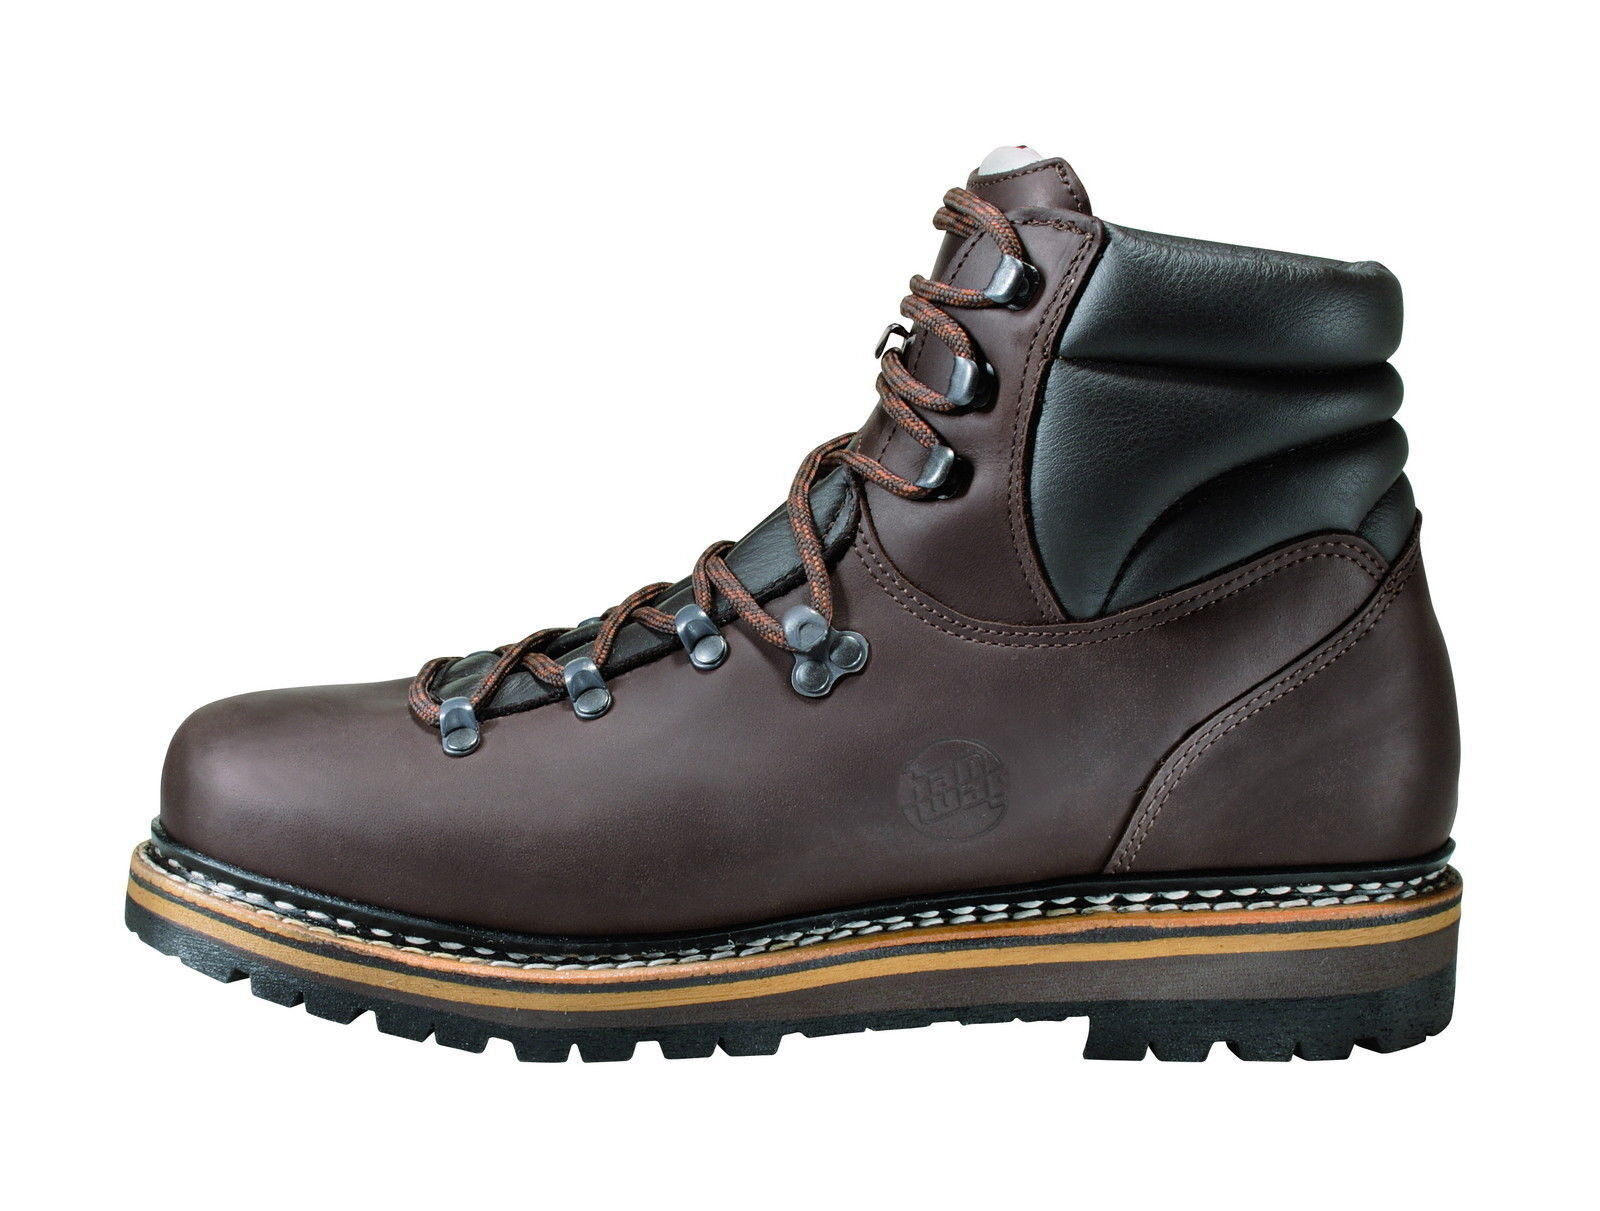 Hanwag Double-Stitched Classic Green Men  Size 10 - 44,5 Maroon  buy 100% authentic quality